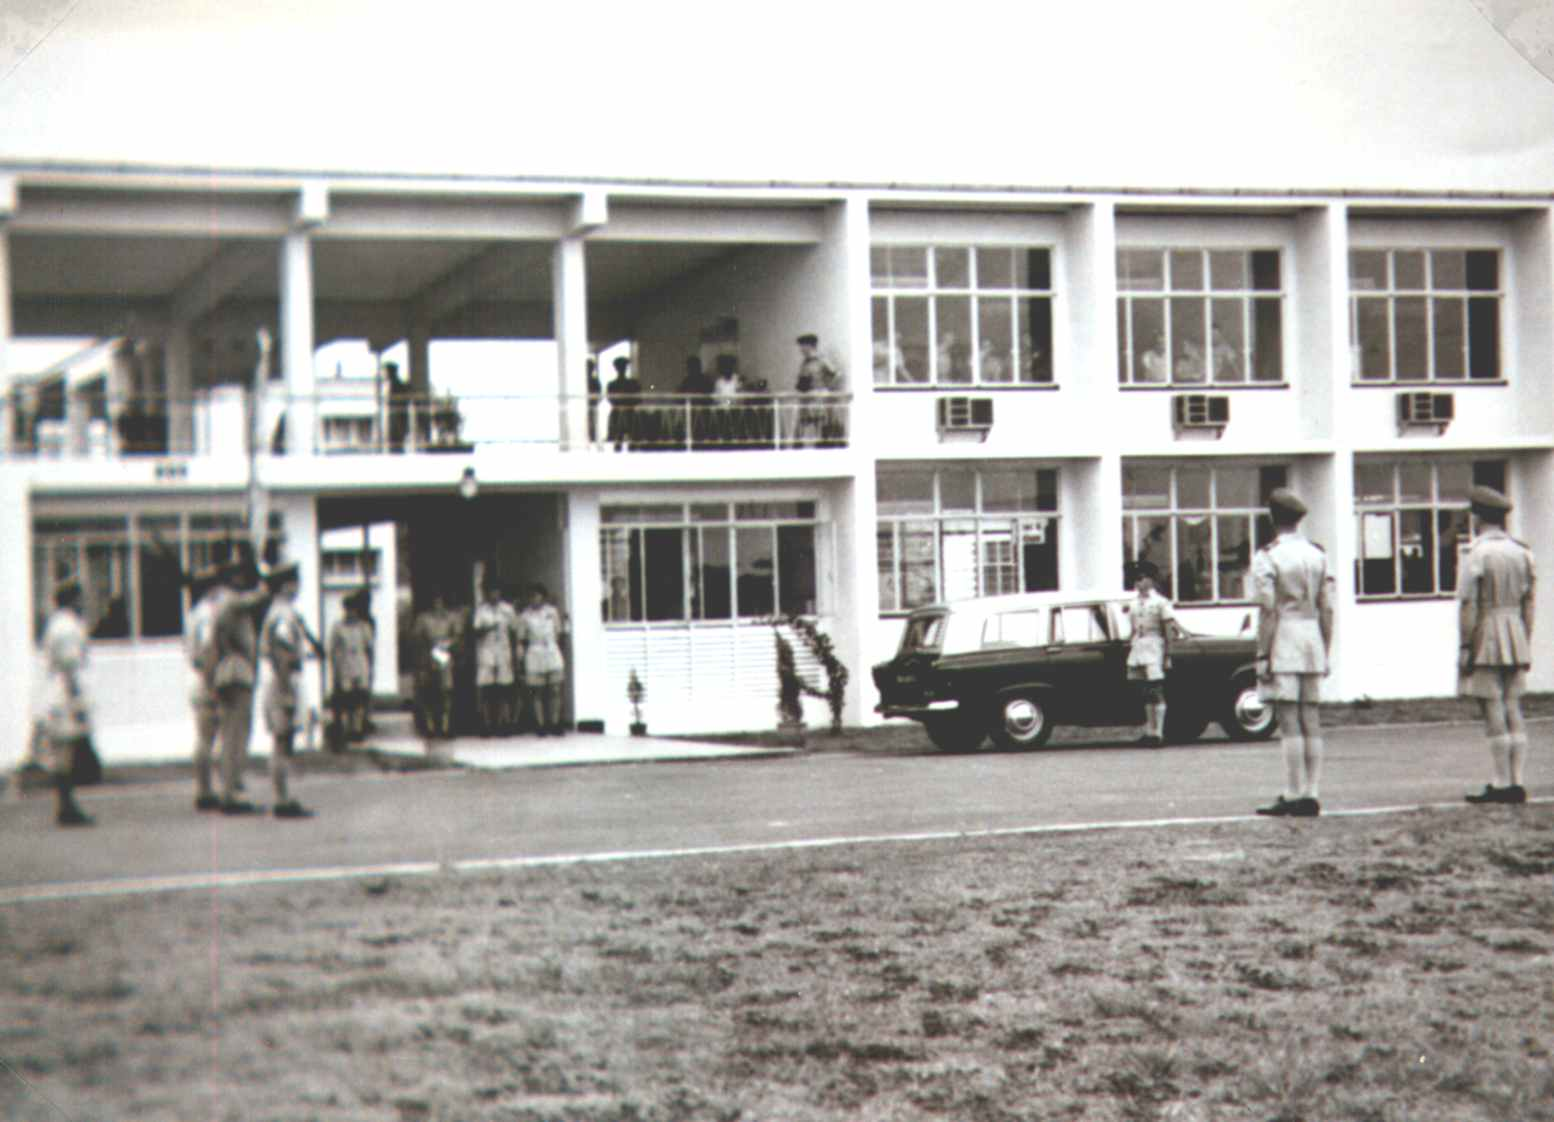 205 Squadron's New Building, with John Burrows Driver by the Car,19.6.1962.